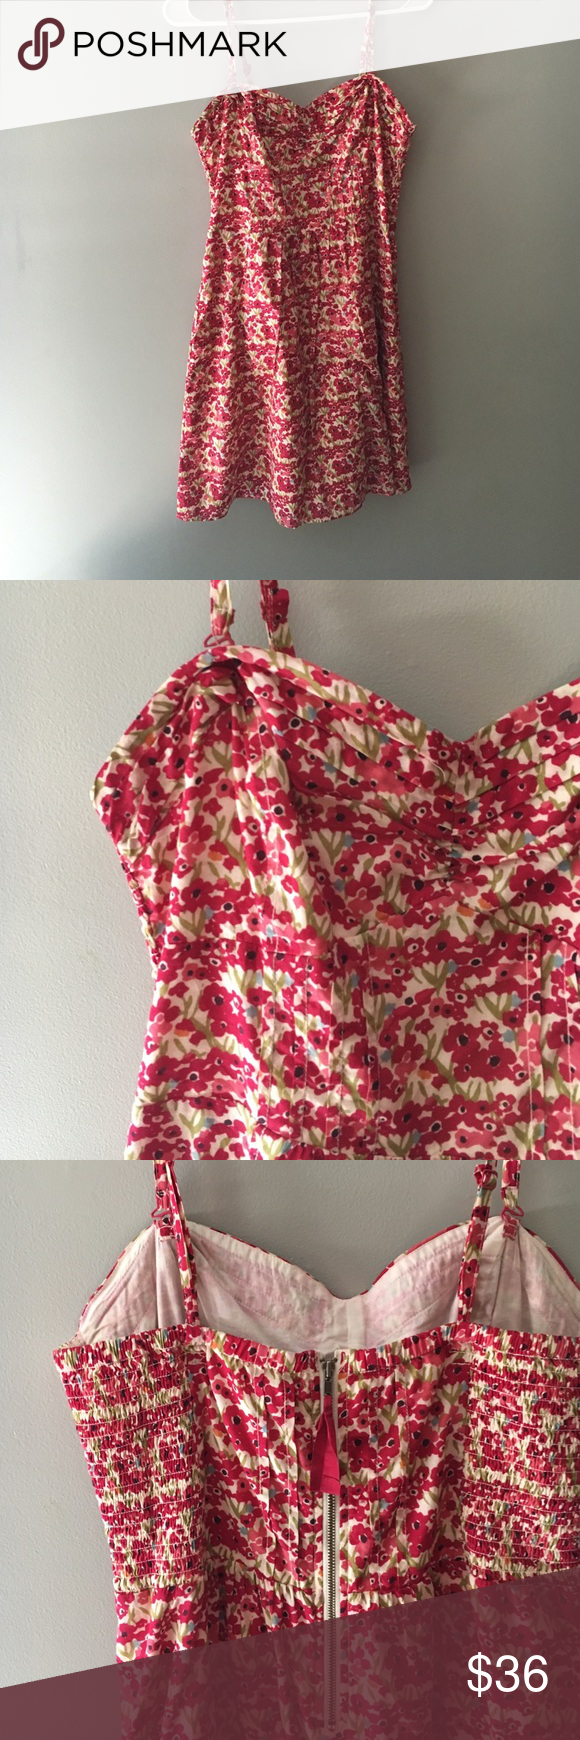 Spaghetti strap sundress This fun summer dress is perfect for sunny days! This dress also has adjustable straps. Willing to go down on price! Just make me an offer! American Eagle Outfitters Dresses